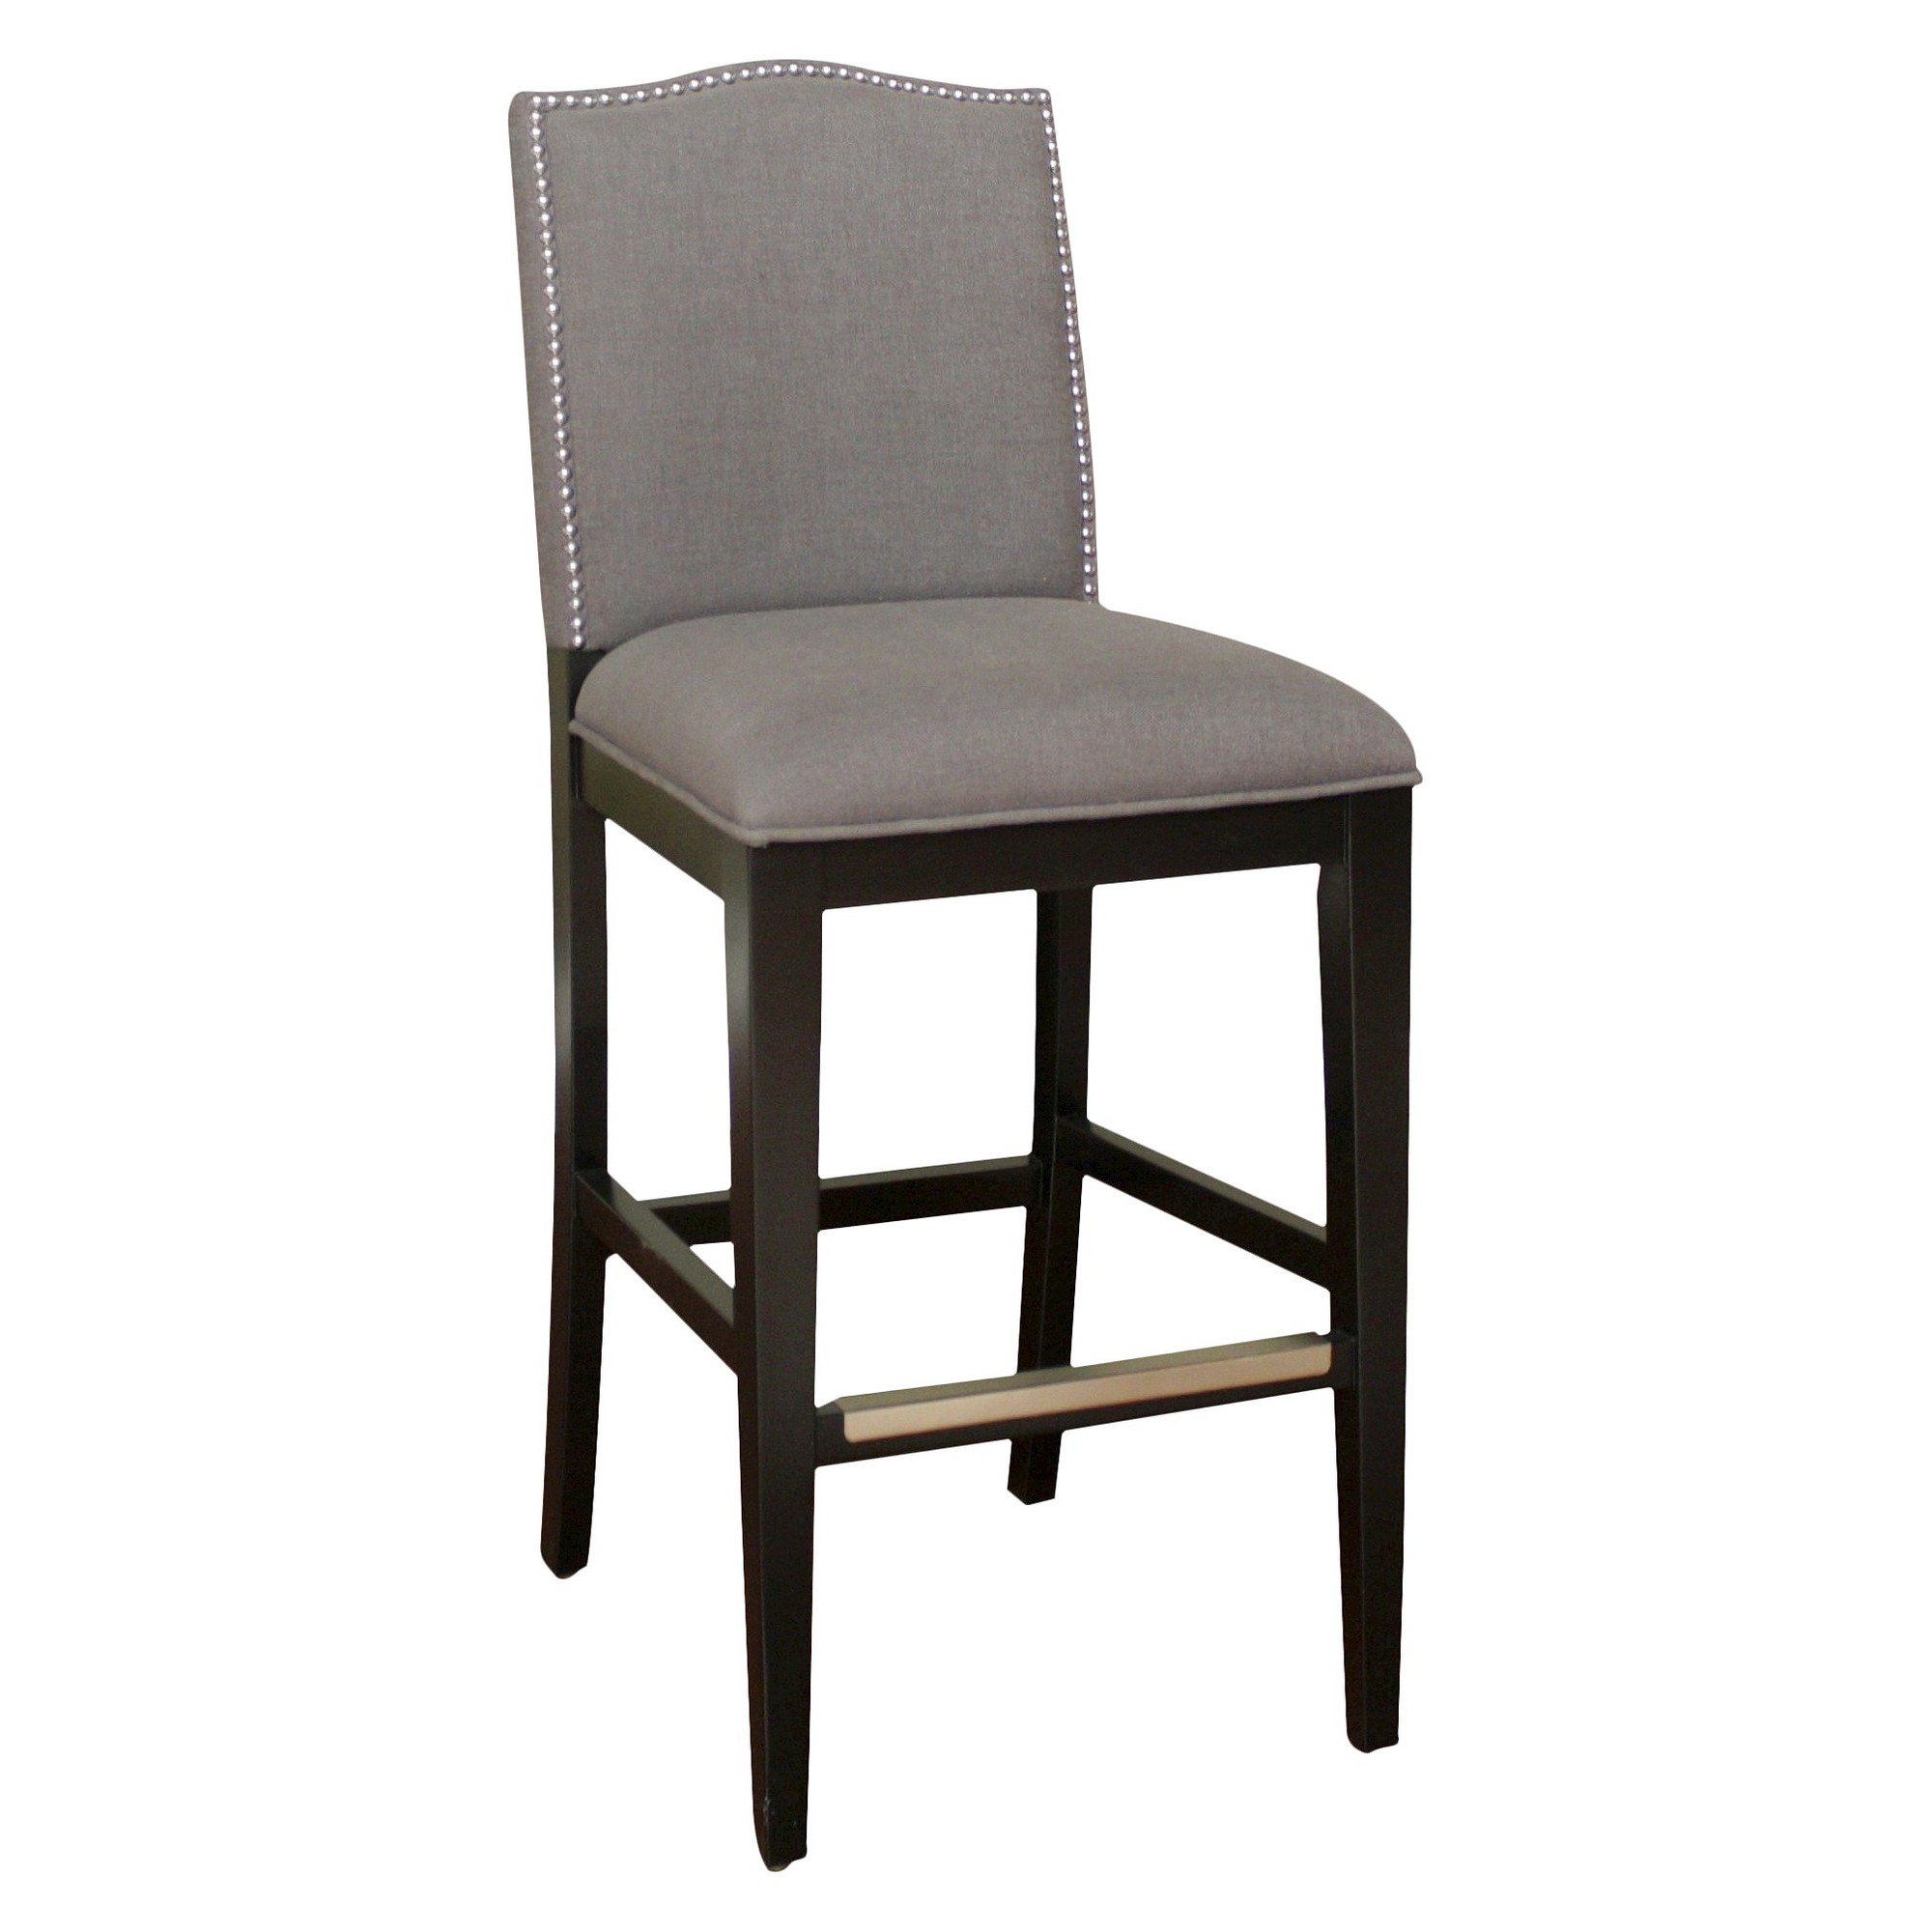 Outstanding 34 Chase Nailhead Trim Linen Barstool Hardwood Smoke Unemploymentrelief Wooden Chair Designs For Living Room Unemploymentrelieforg